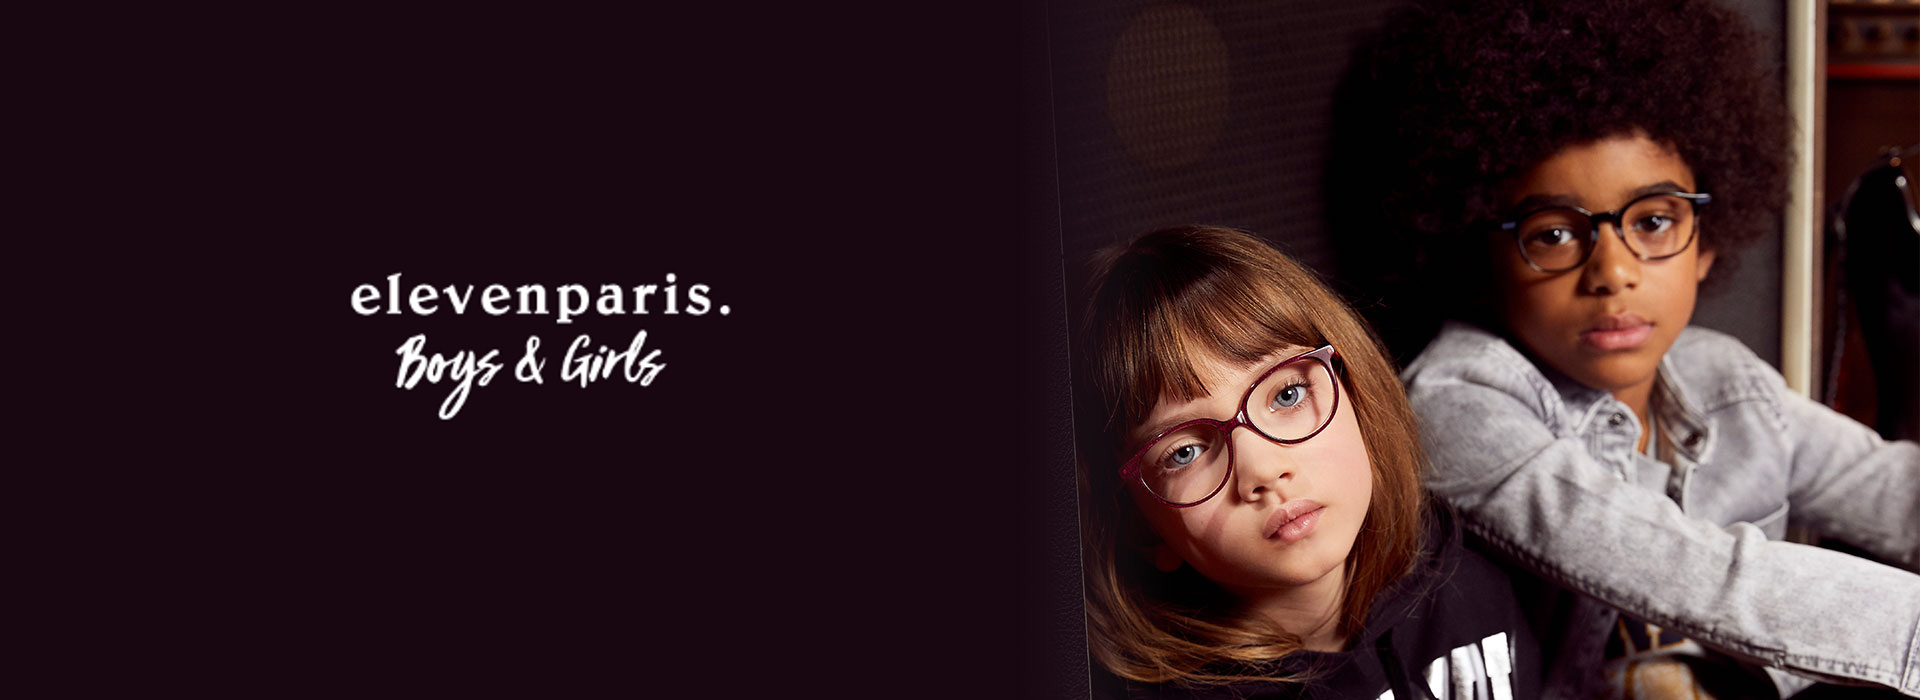 lunette little eleven paris